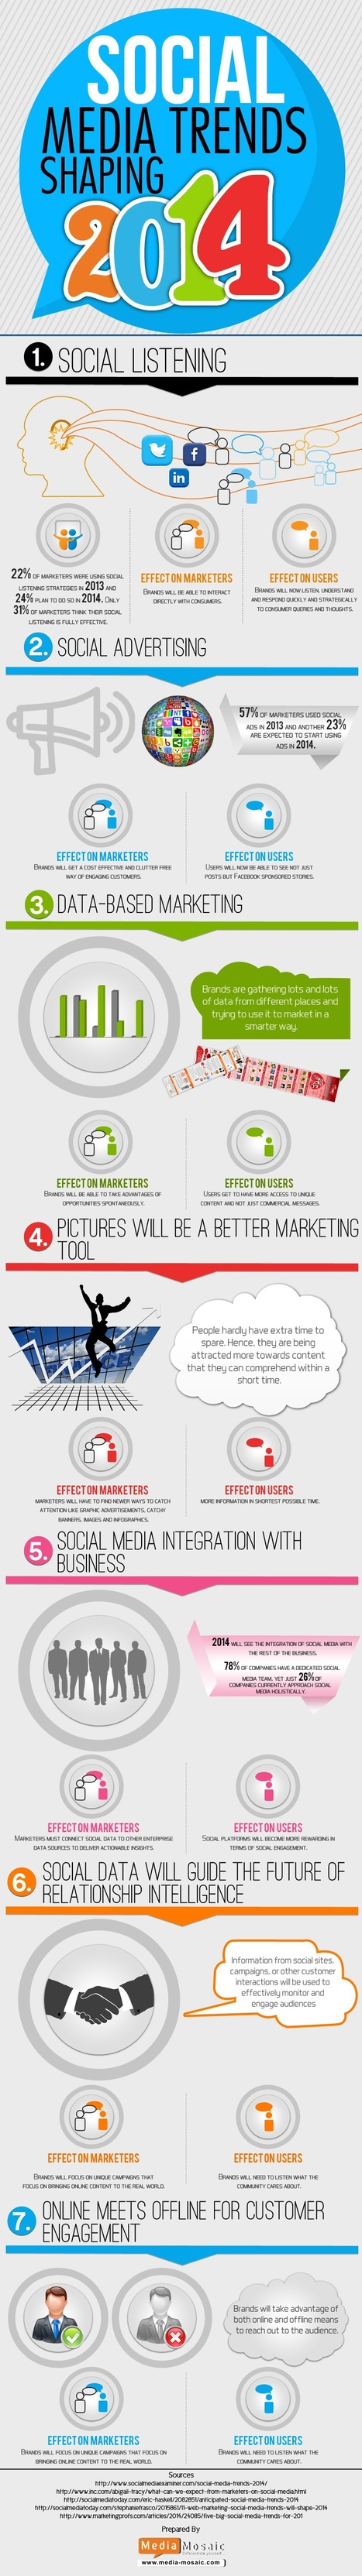 4 Social Media Trends Already Shaping 2014 [INFOGRAPHIC] | MarketingHits | Scoop.it